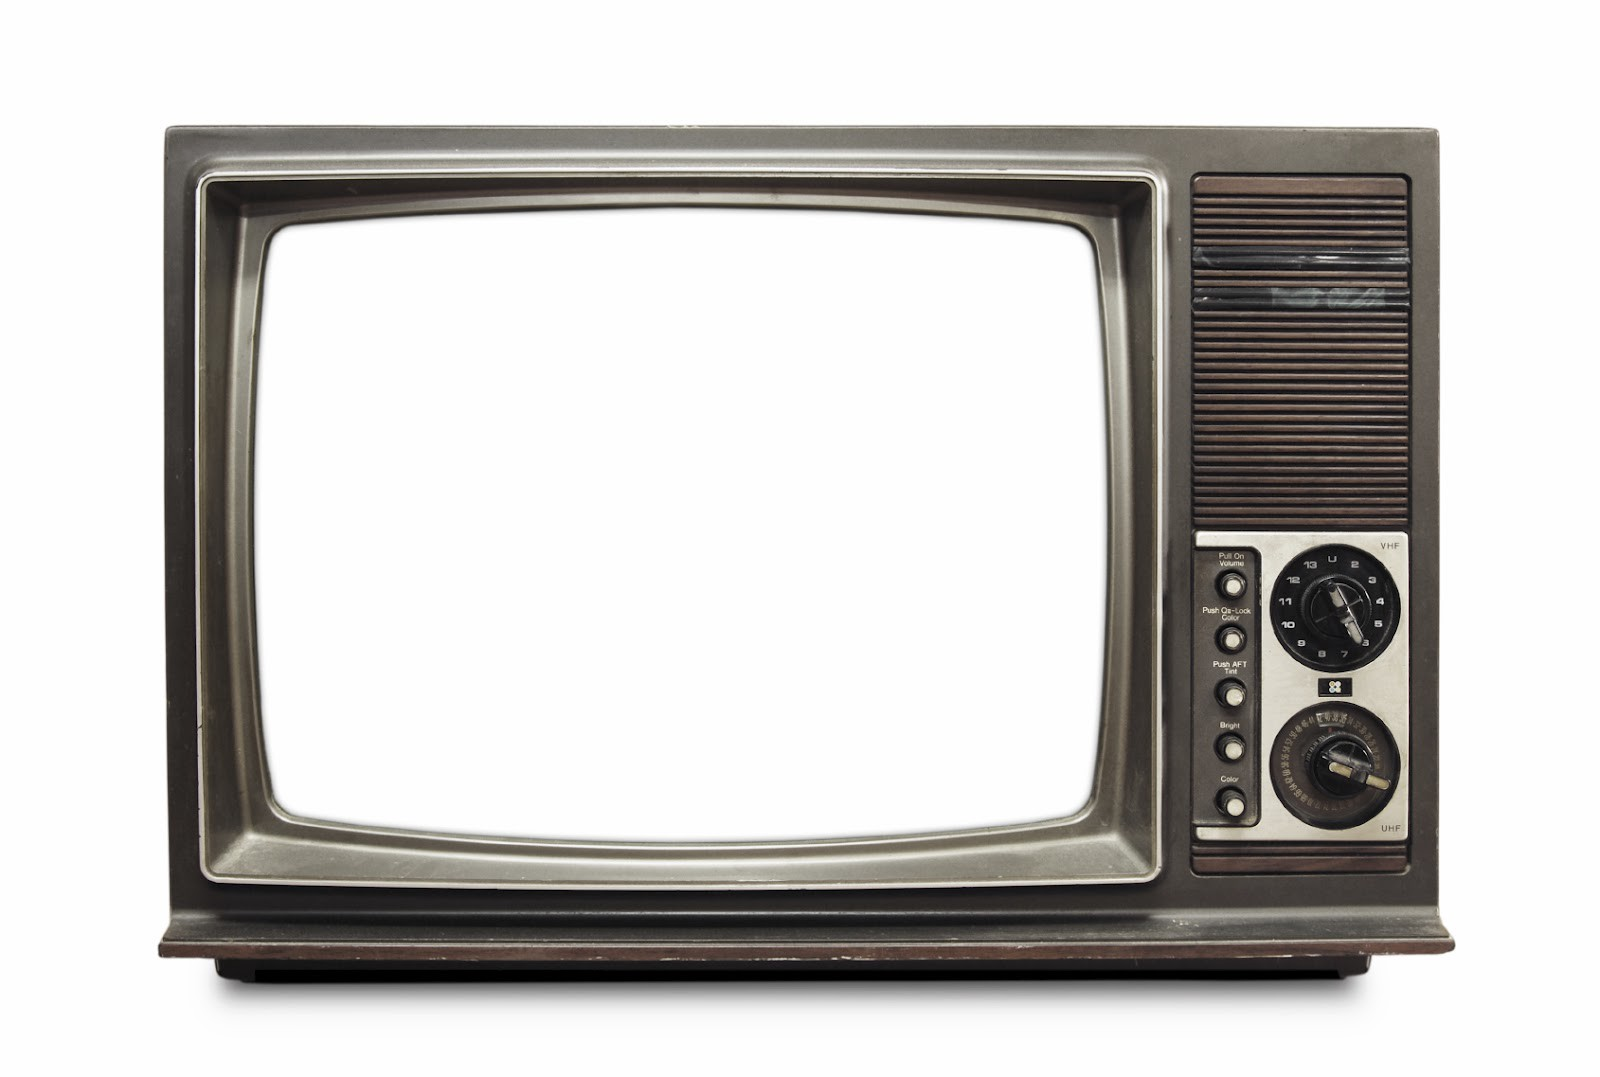 31dfa54b2a86 You Likely Have No Idea How TV Ratings Work — A Lot More People Are  Watching Than You Think